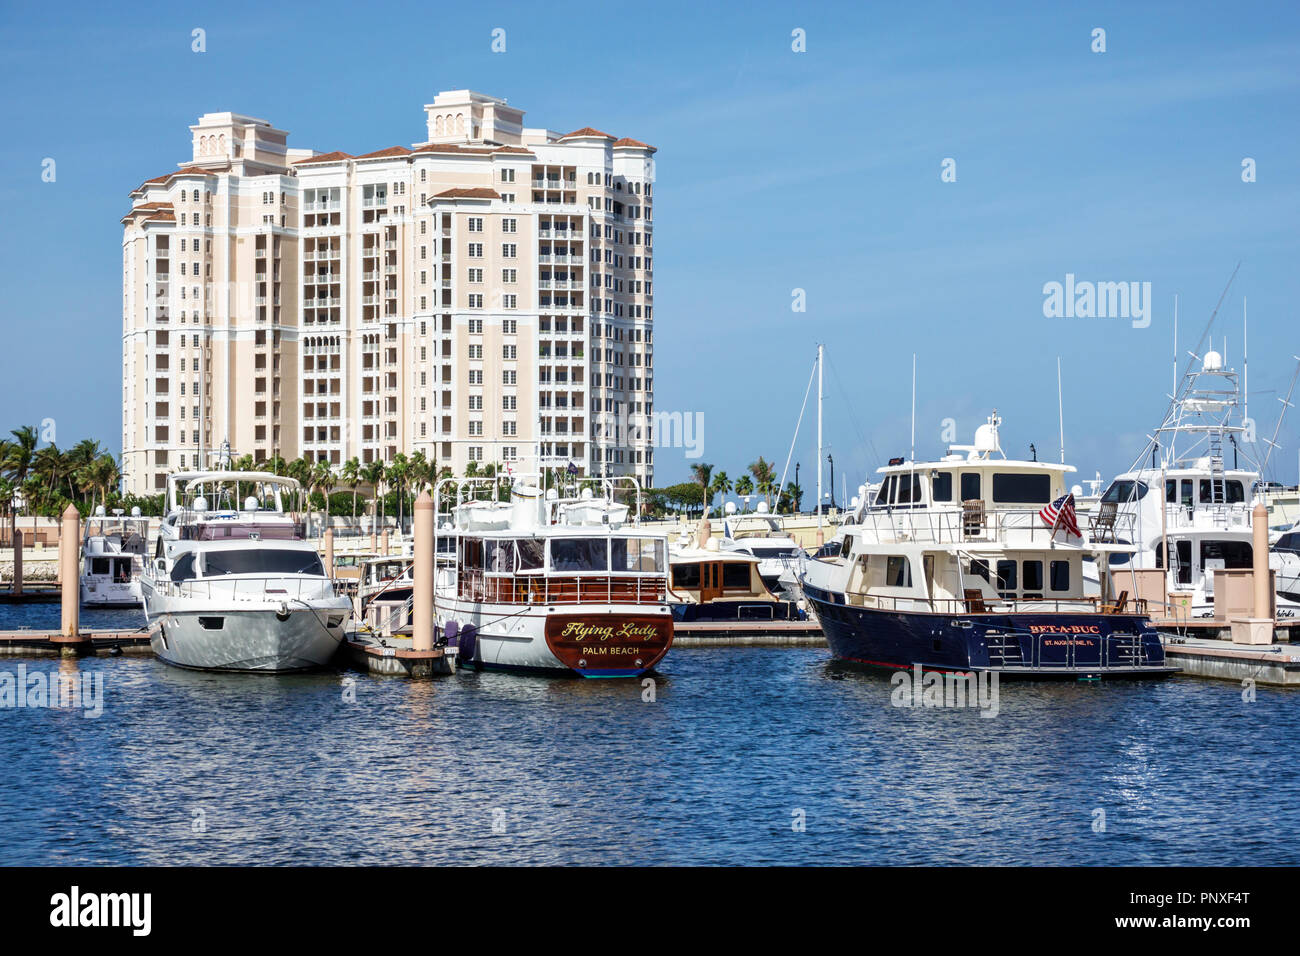 West Palm Beach Lake Worth Florida Lagoon marina high rise condominium building - Stock Image